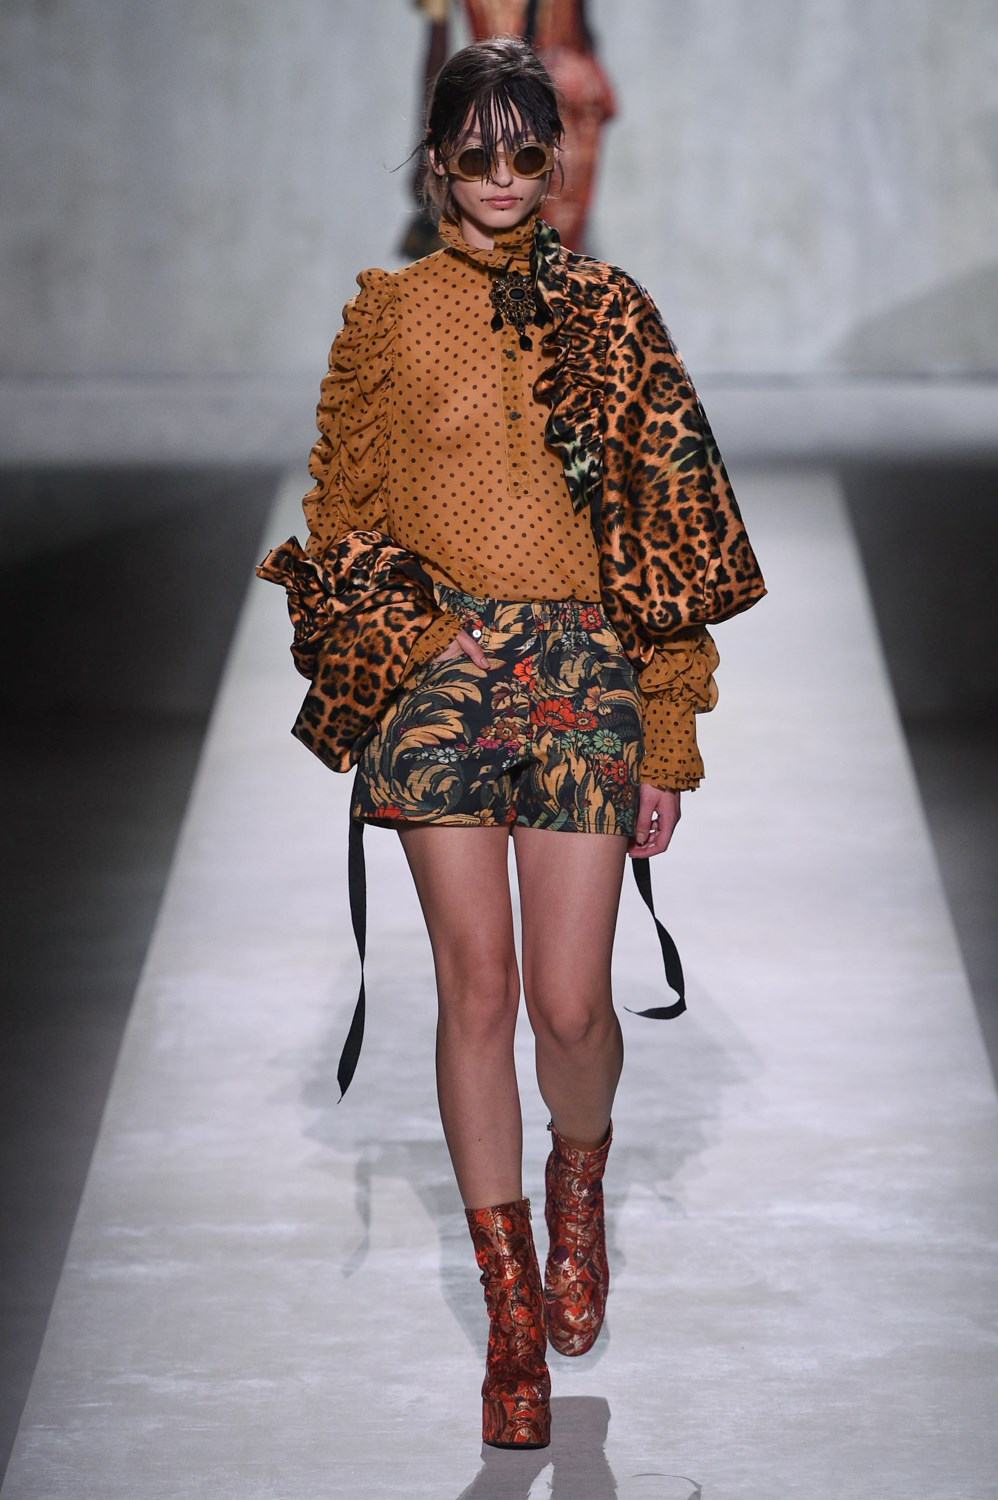 Short Shorts Spring 2020 Trend from Runway to Street